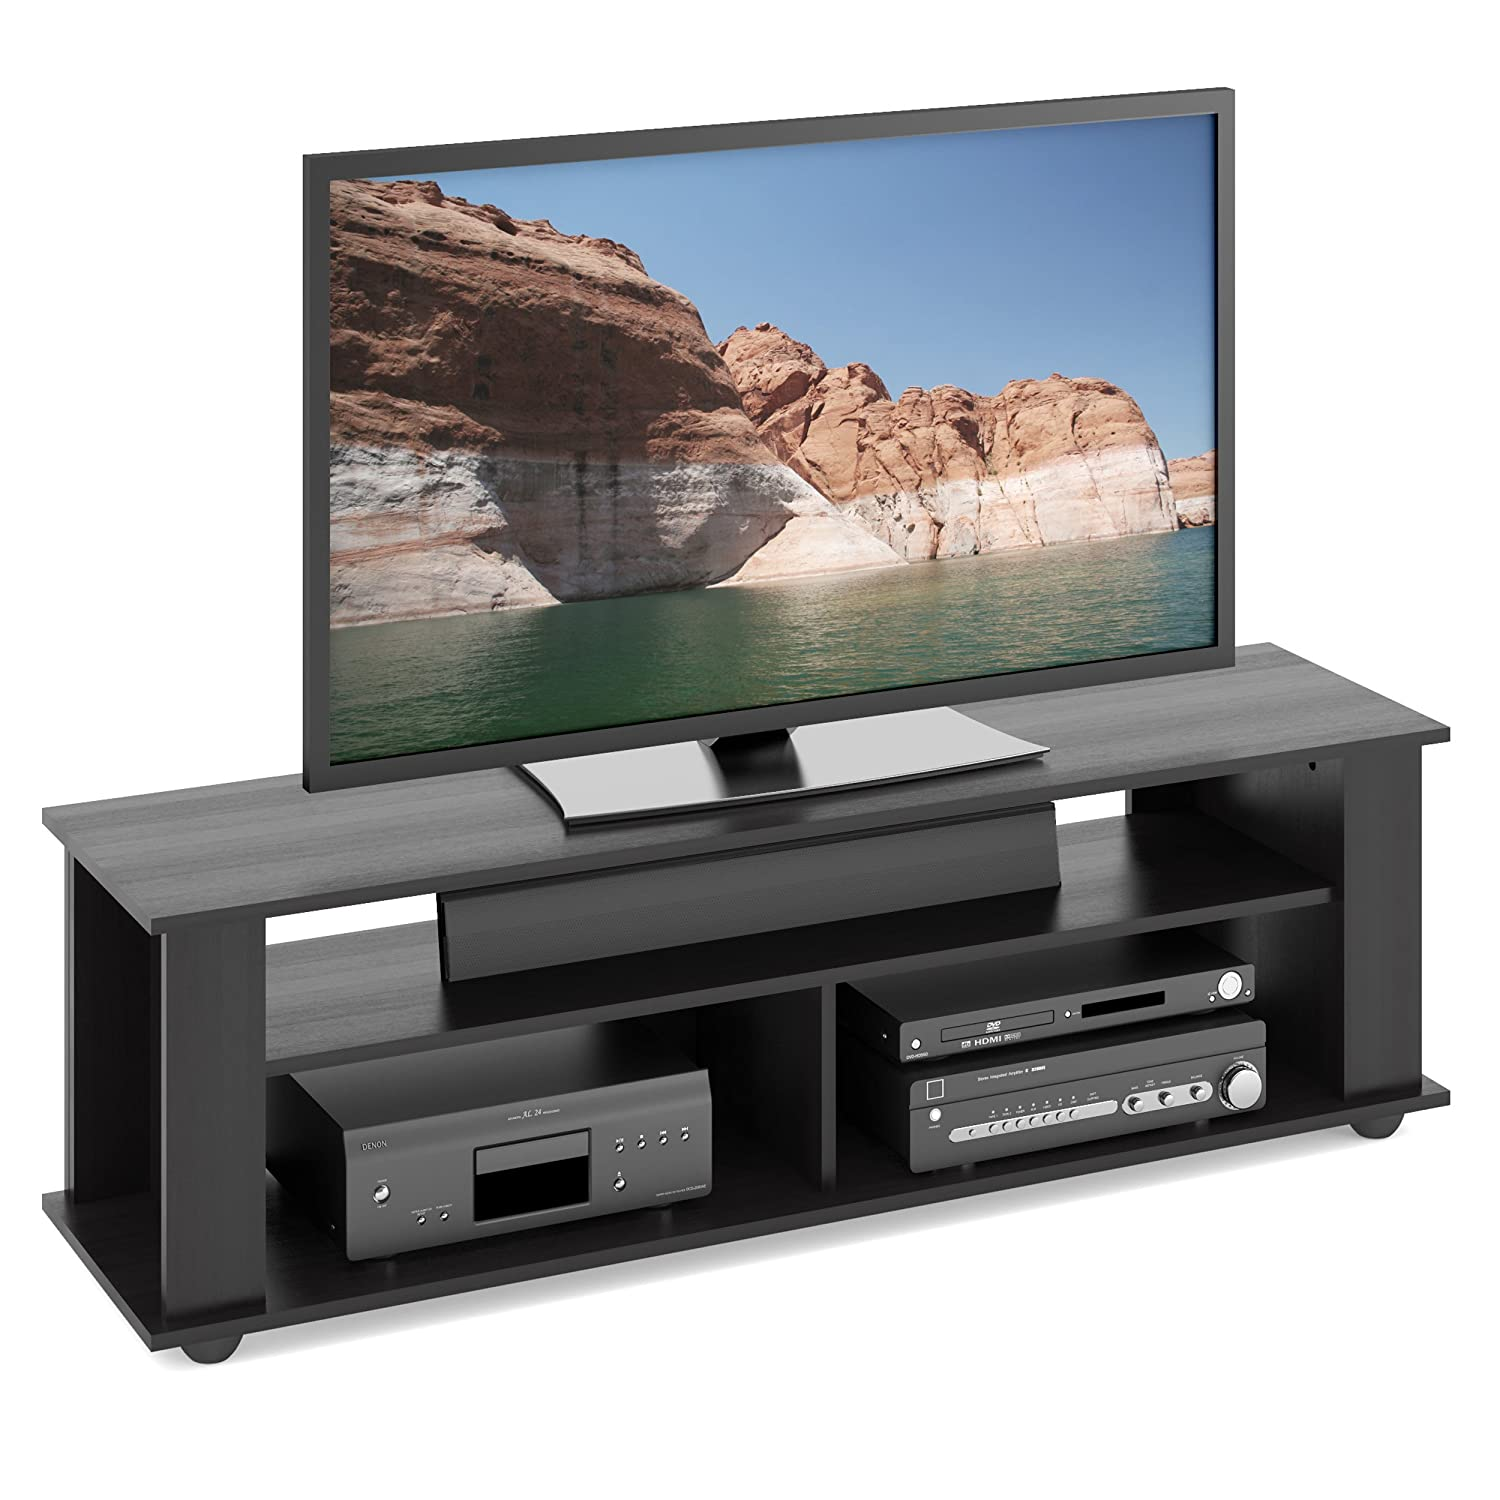 amazonca television stands  entertainment centers home  kitchen - corliving tbfb bakersfield ravenwood black tvcomponent stand